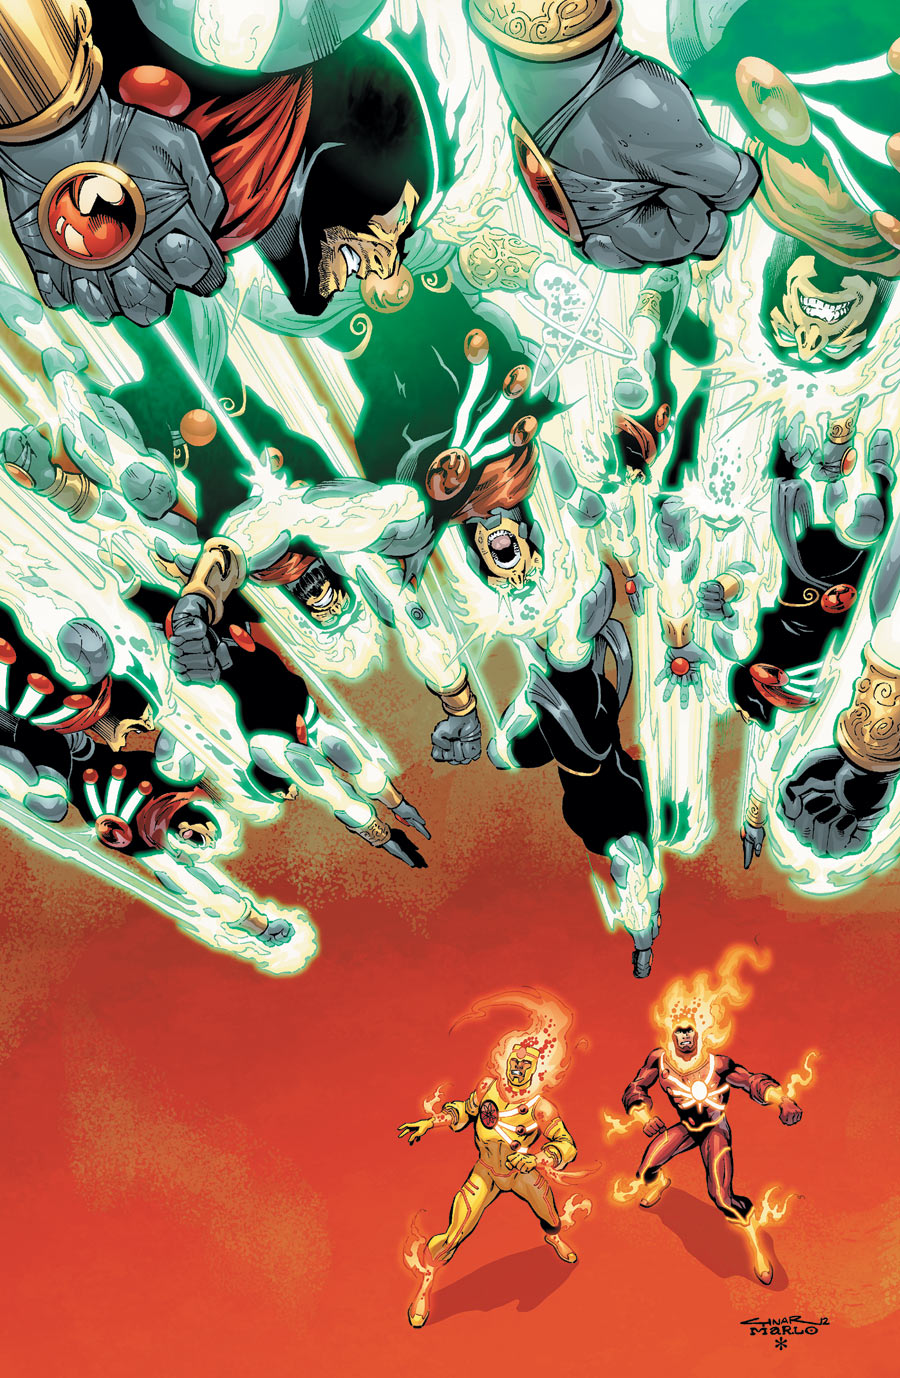 Fury of Firestorm: The Nuclear Men #12 cover by Yildiray Cinar and Marlo Alquiza